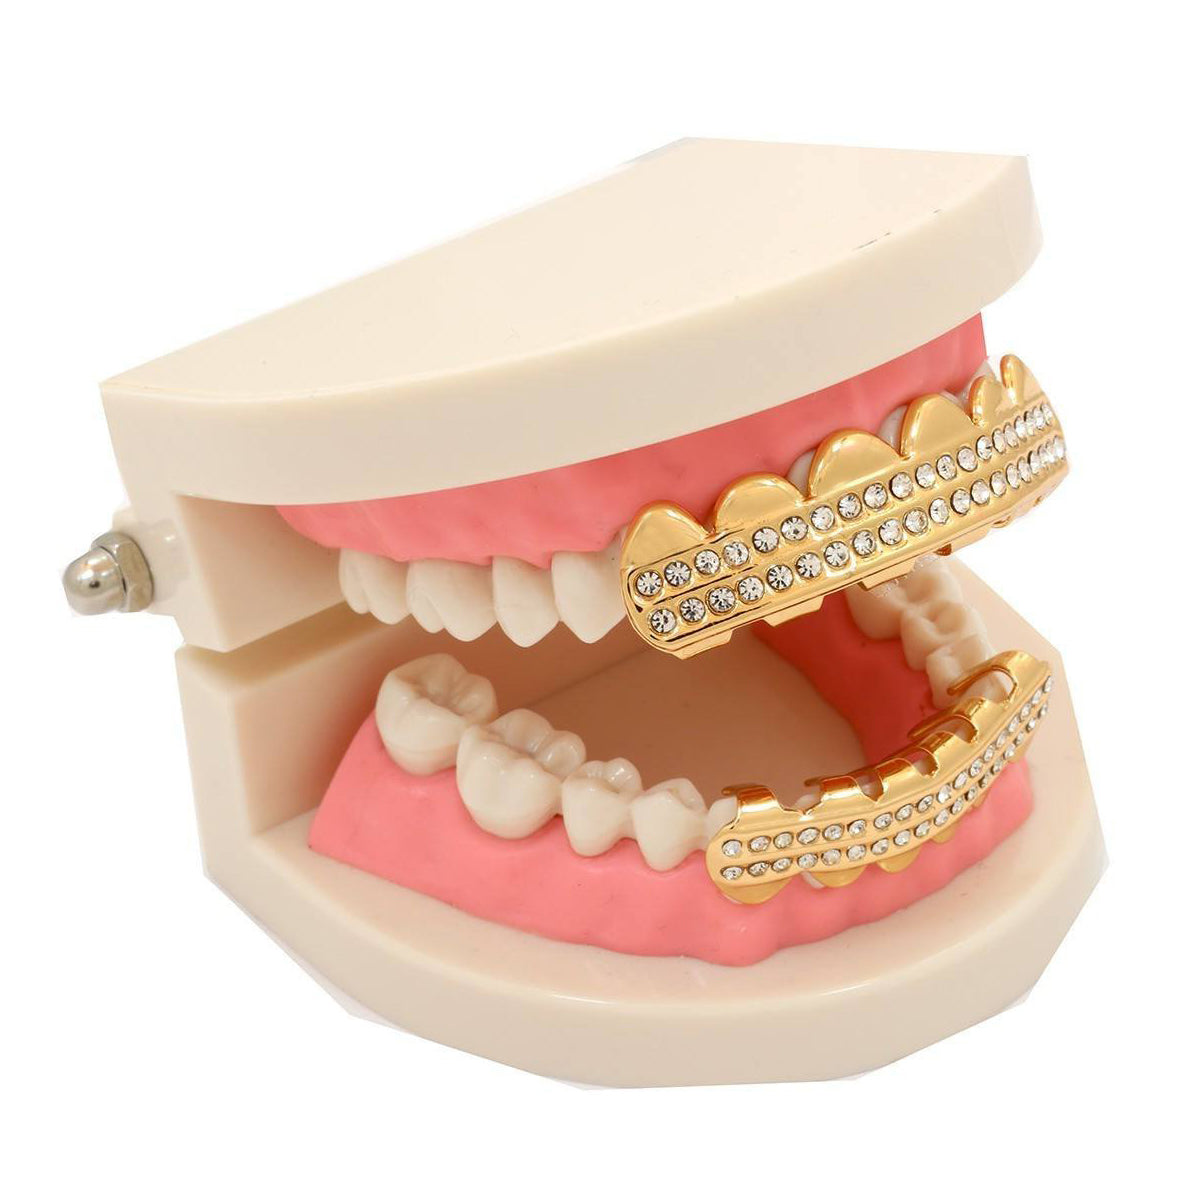 GRILLZ SET GOLD 2-ROW BLINGKINGSTAR